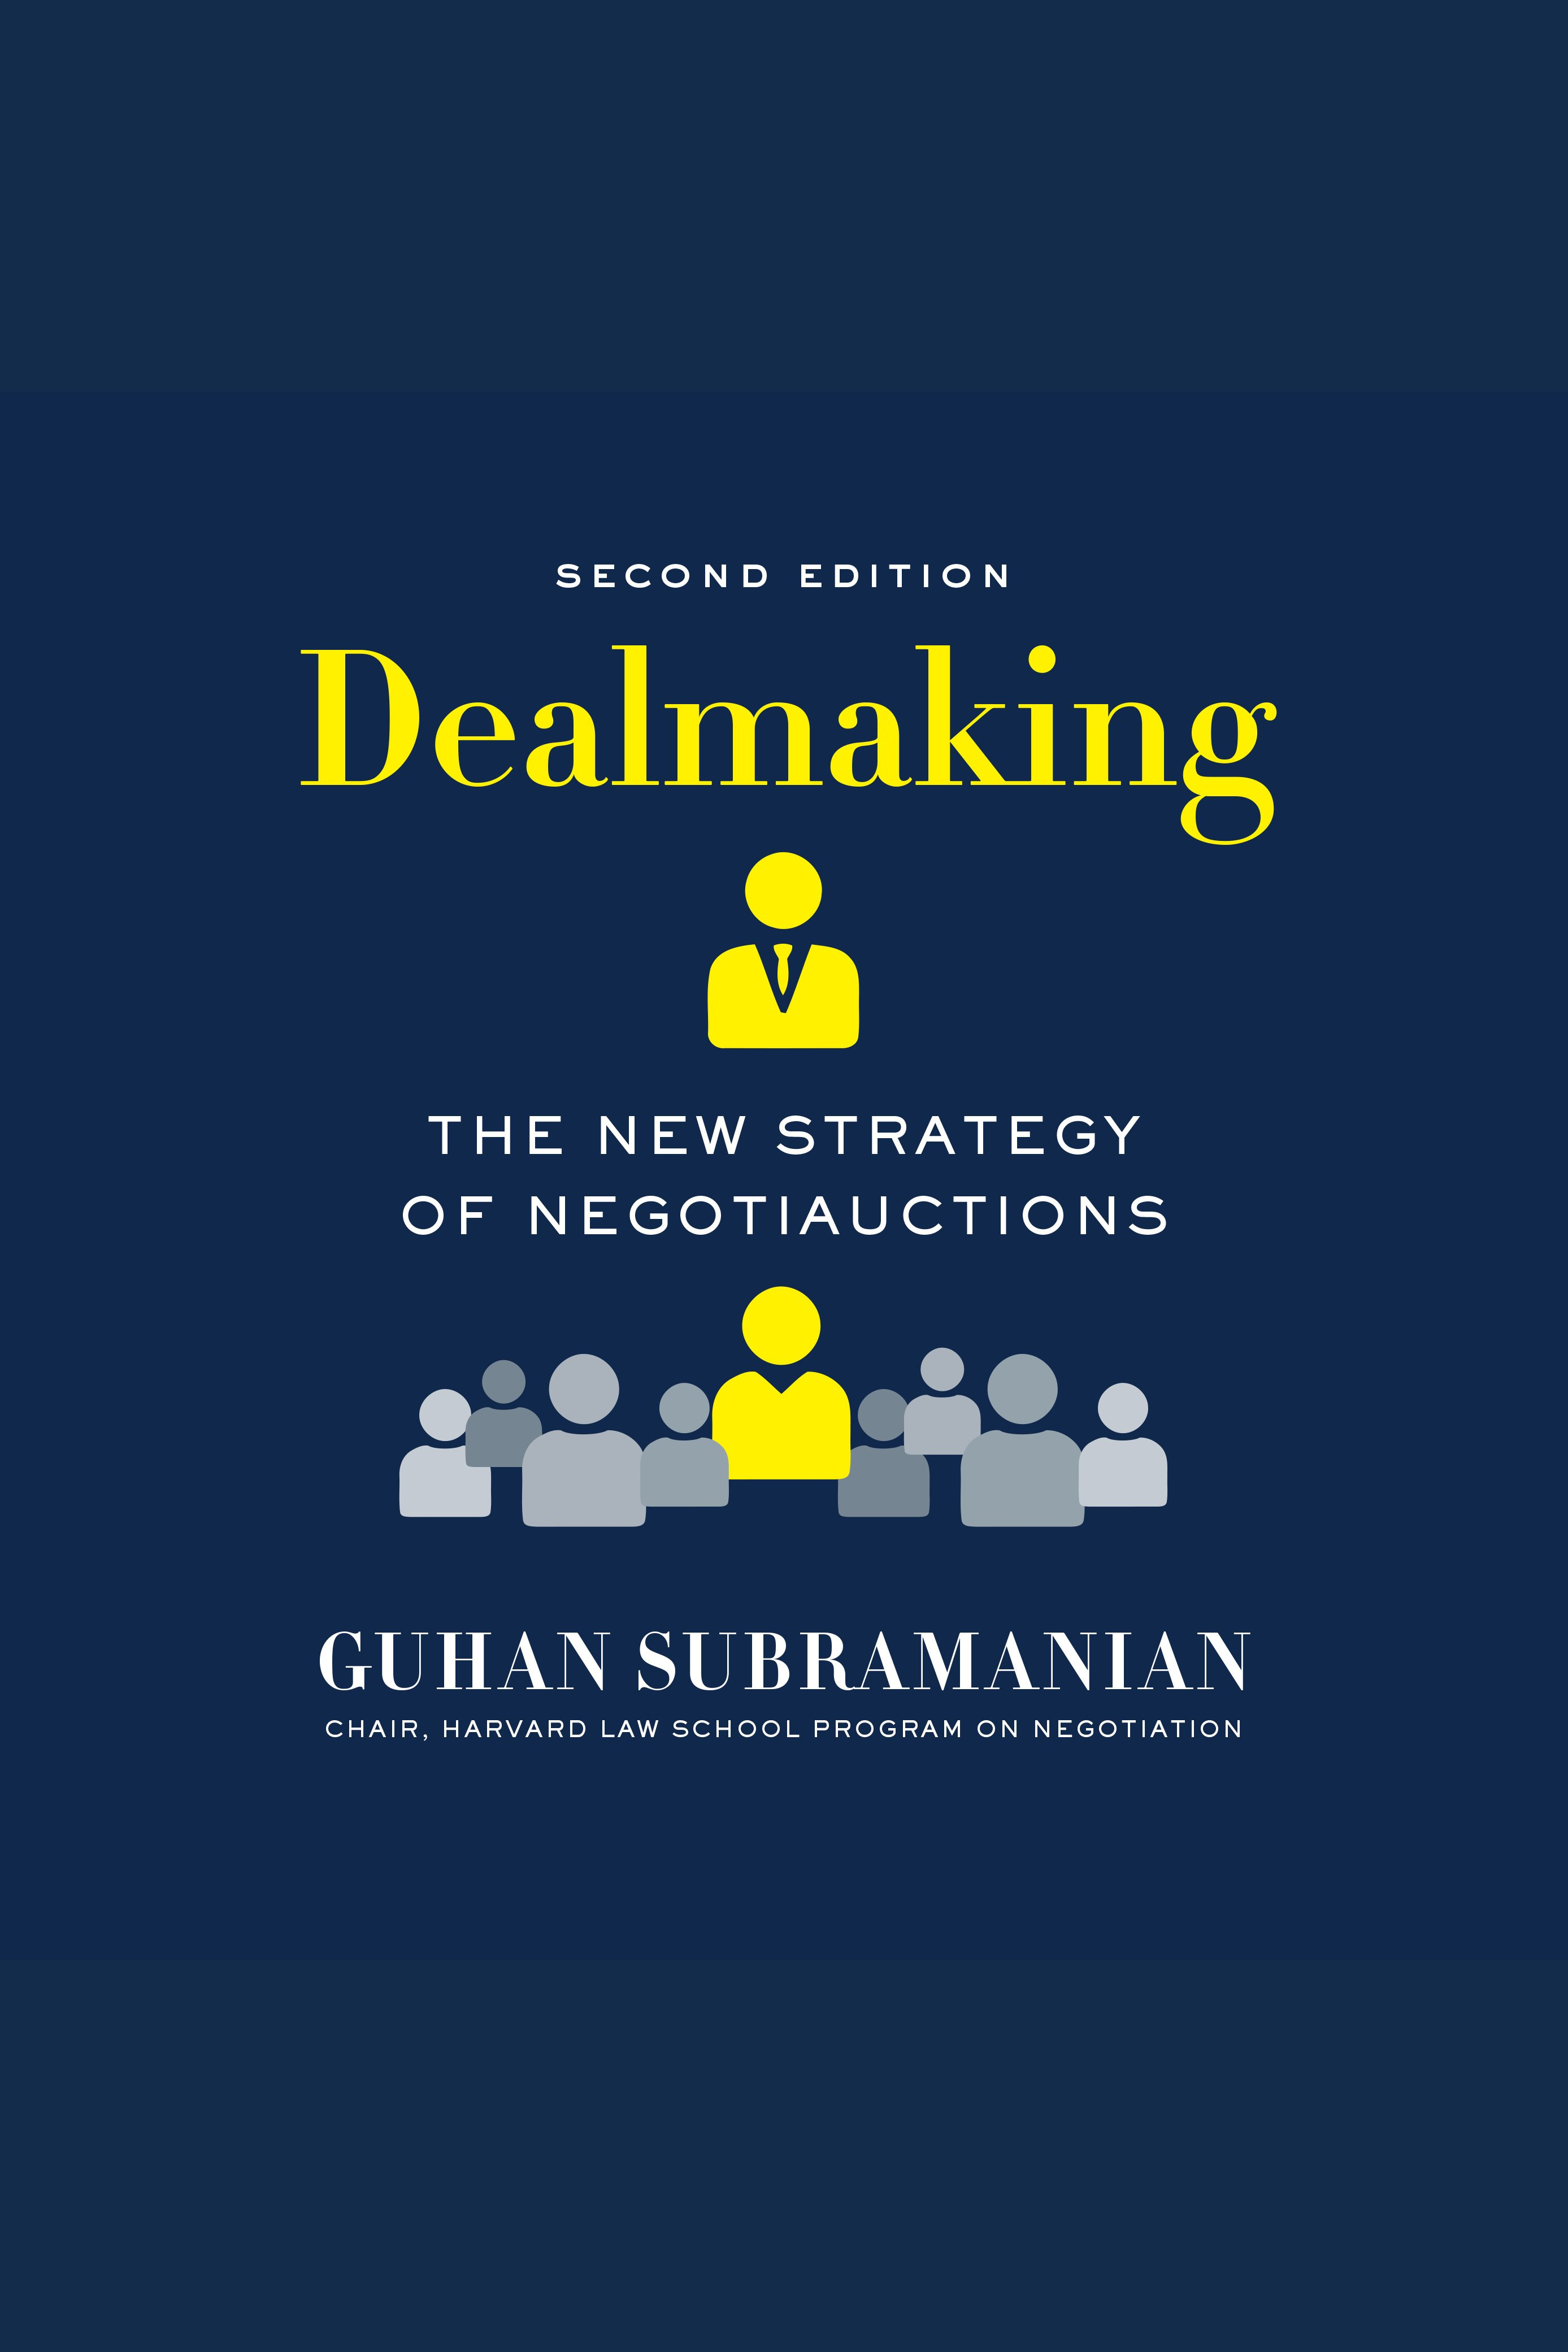 Dealmaking The New Strategy of Negotiauctions (Second Edition)